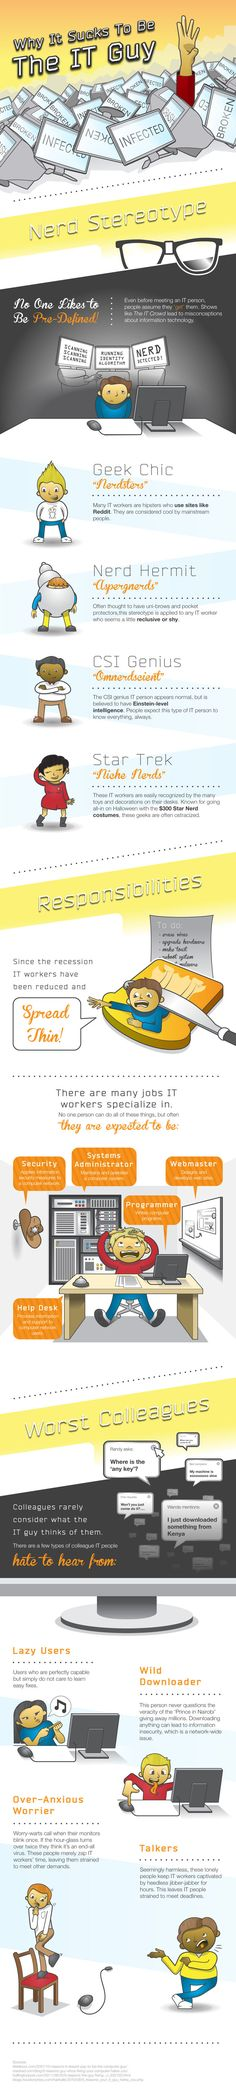 Why it sucks to be the IT guy